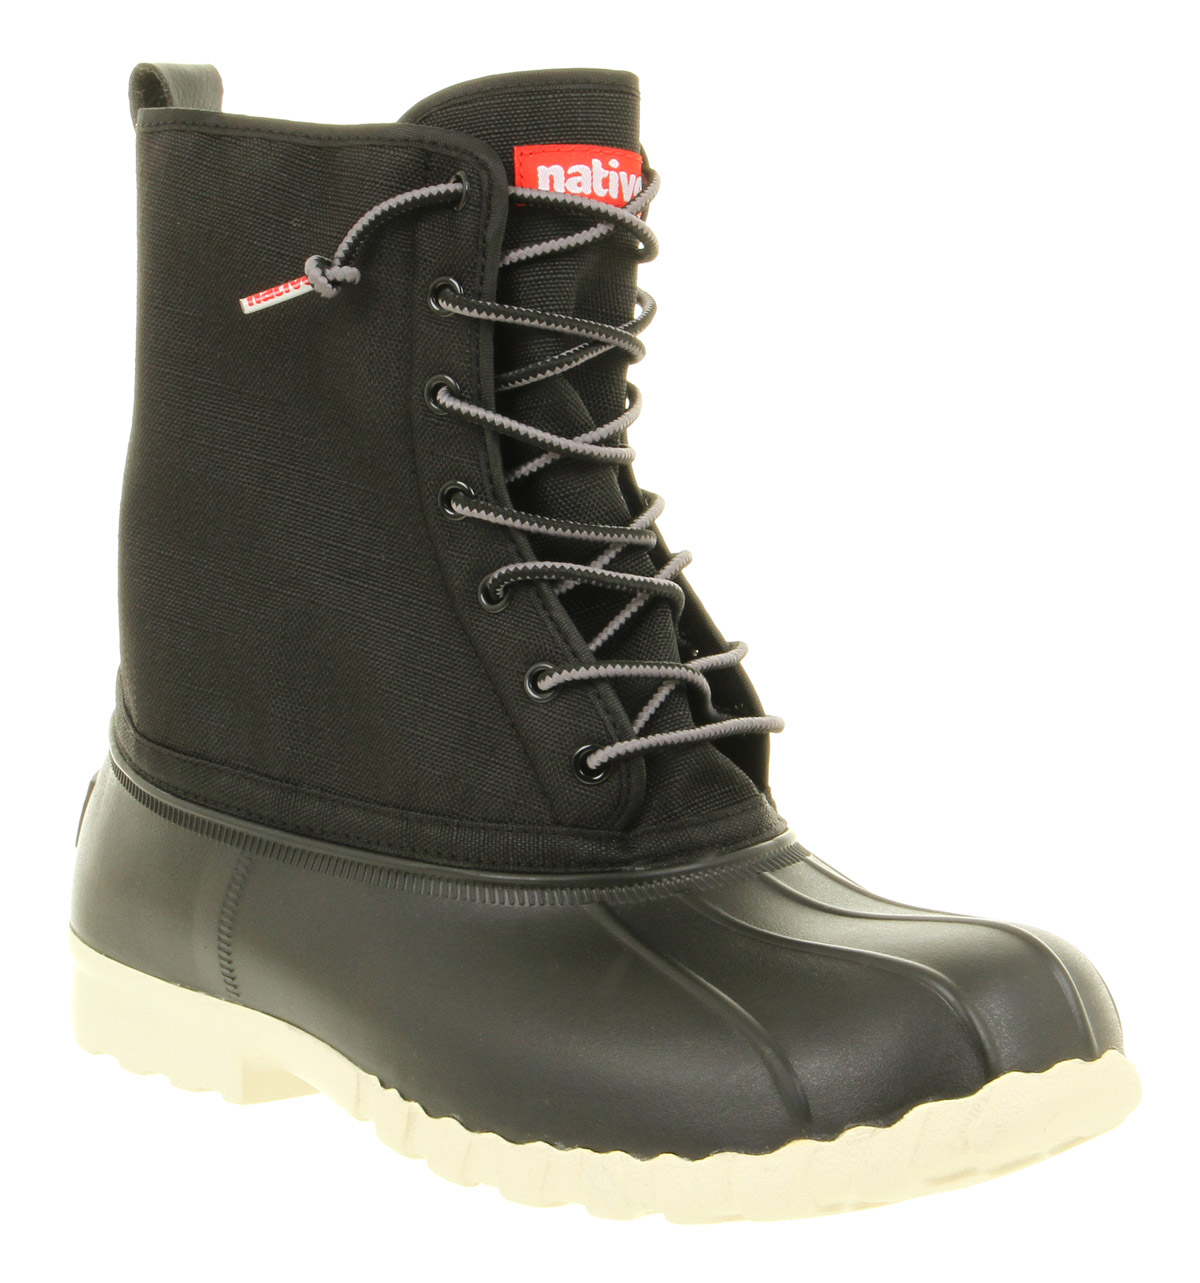 Mens-Native-Jimmy-Duck-Boot-Jiffy-Black-Boots